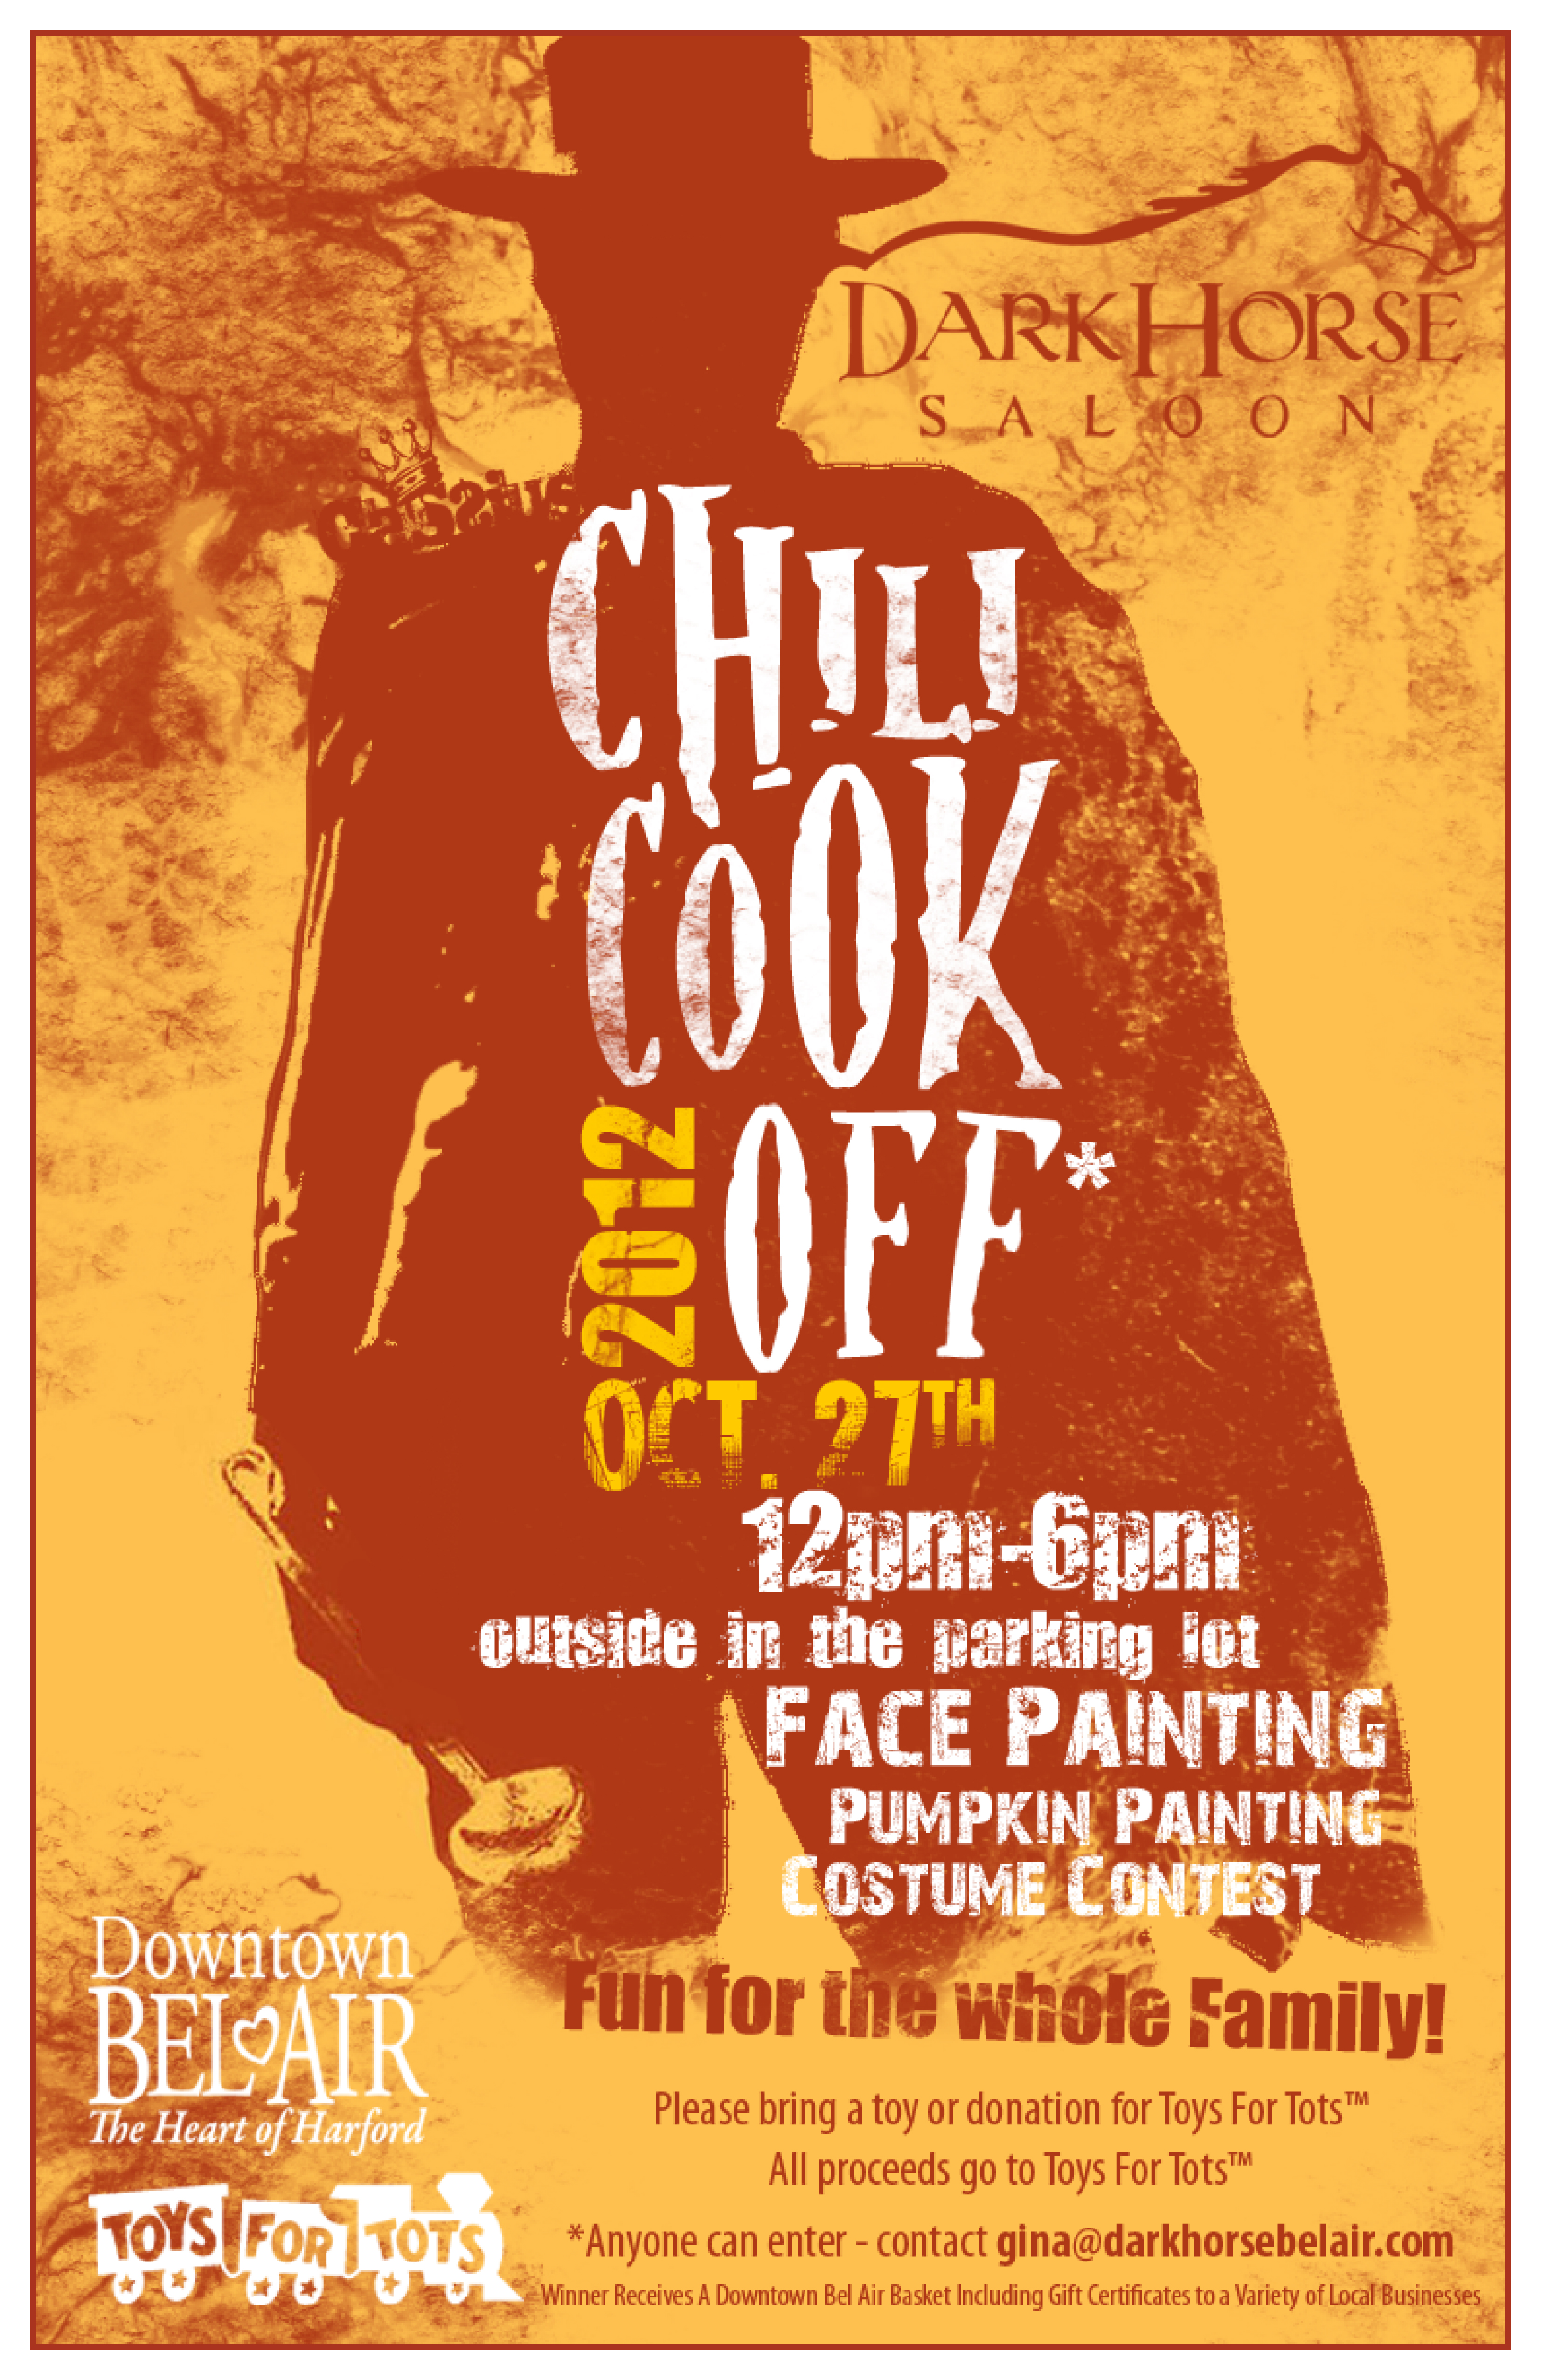 Dark Horse Saloon in Bel Air to host Chili Cook Off to ...